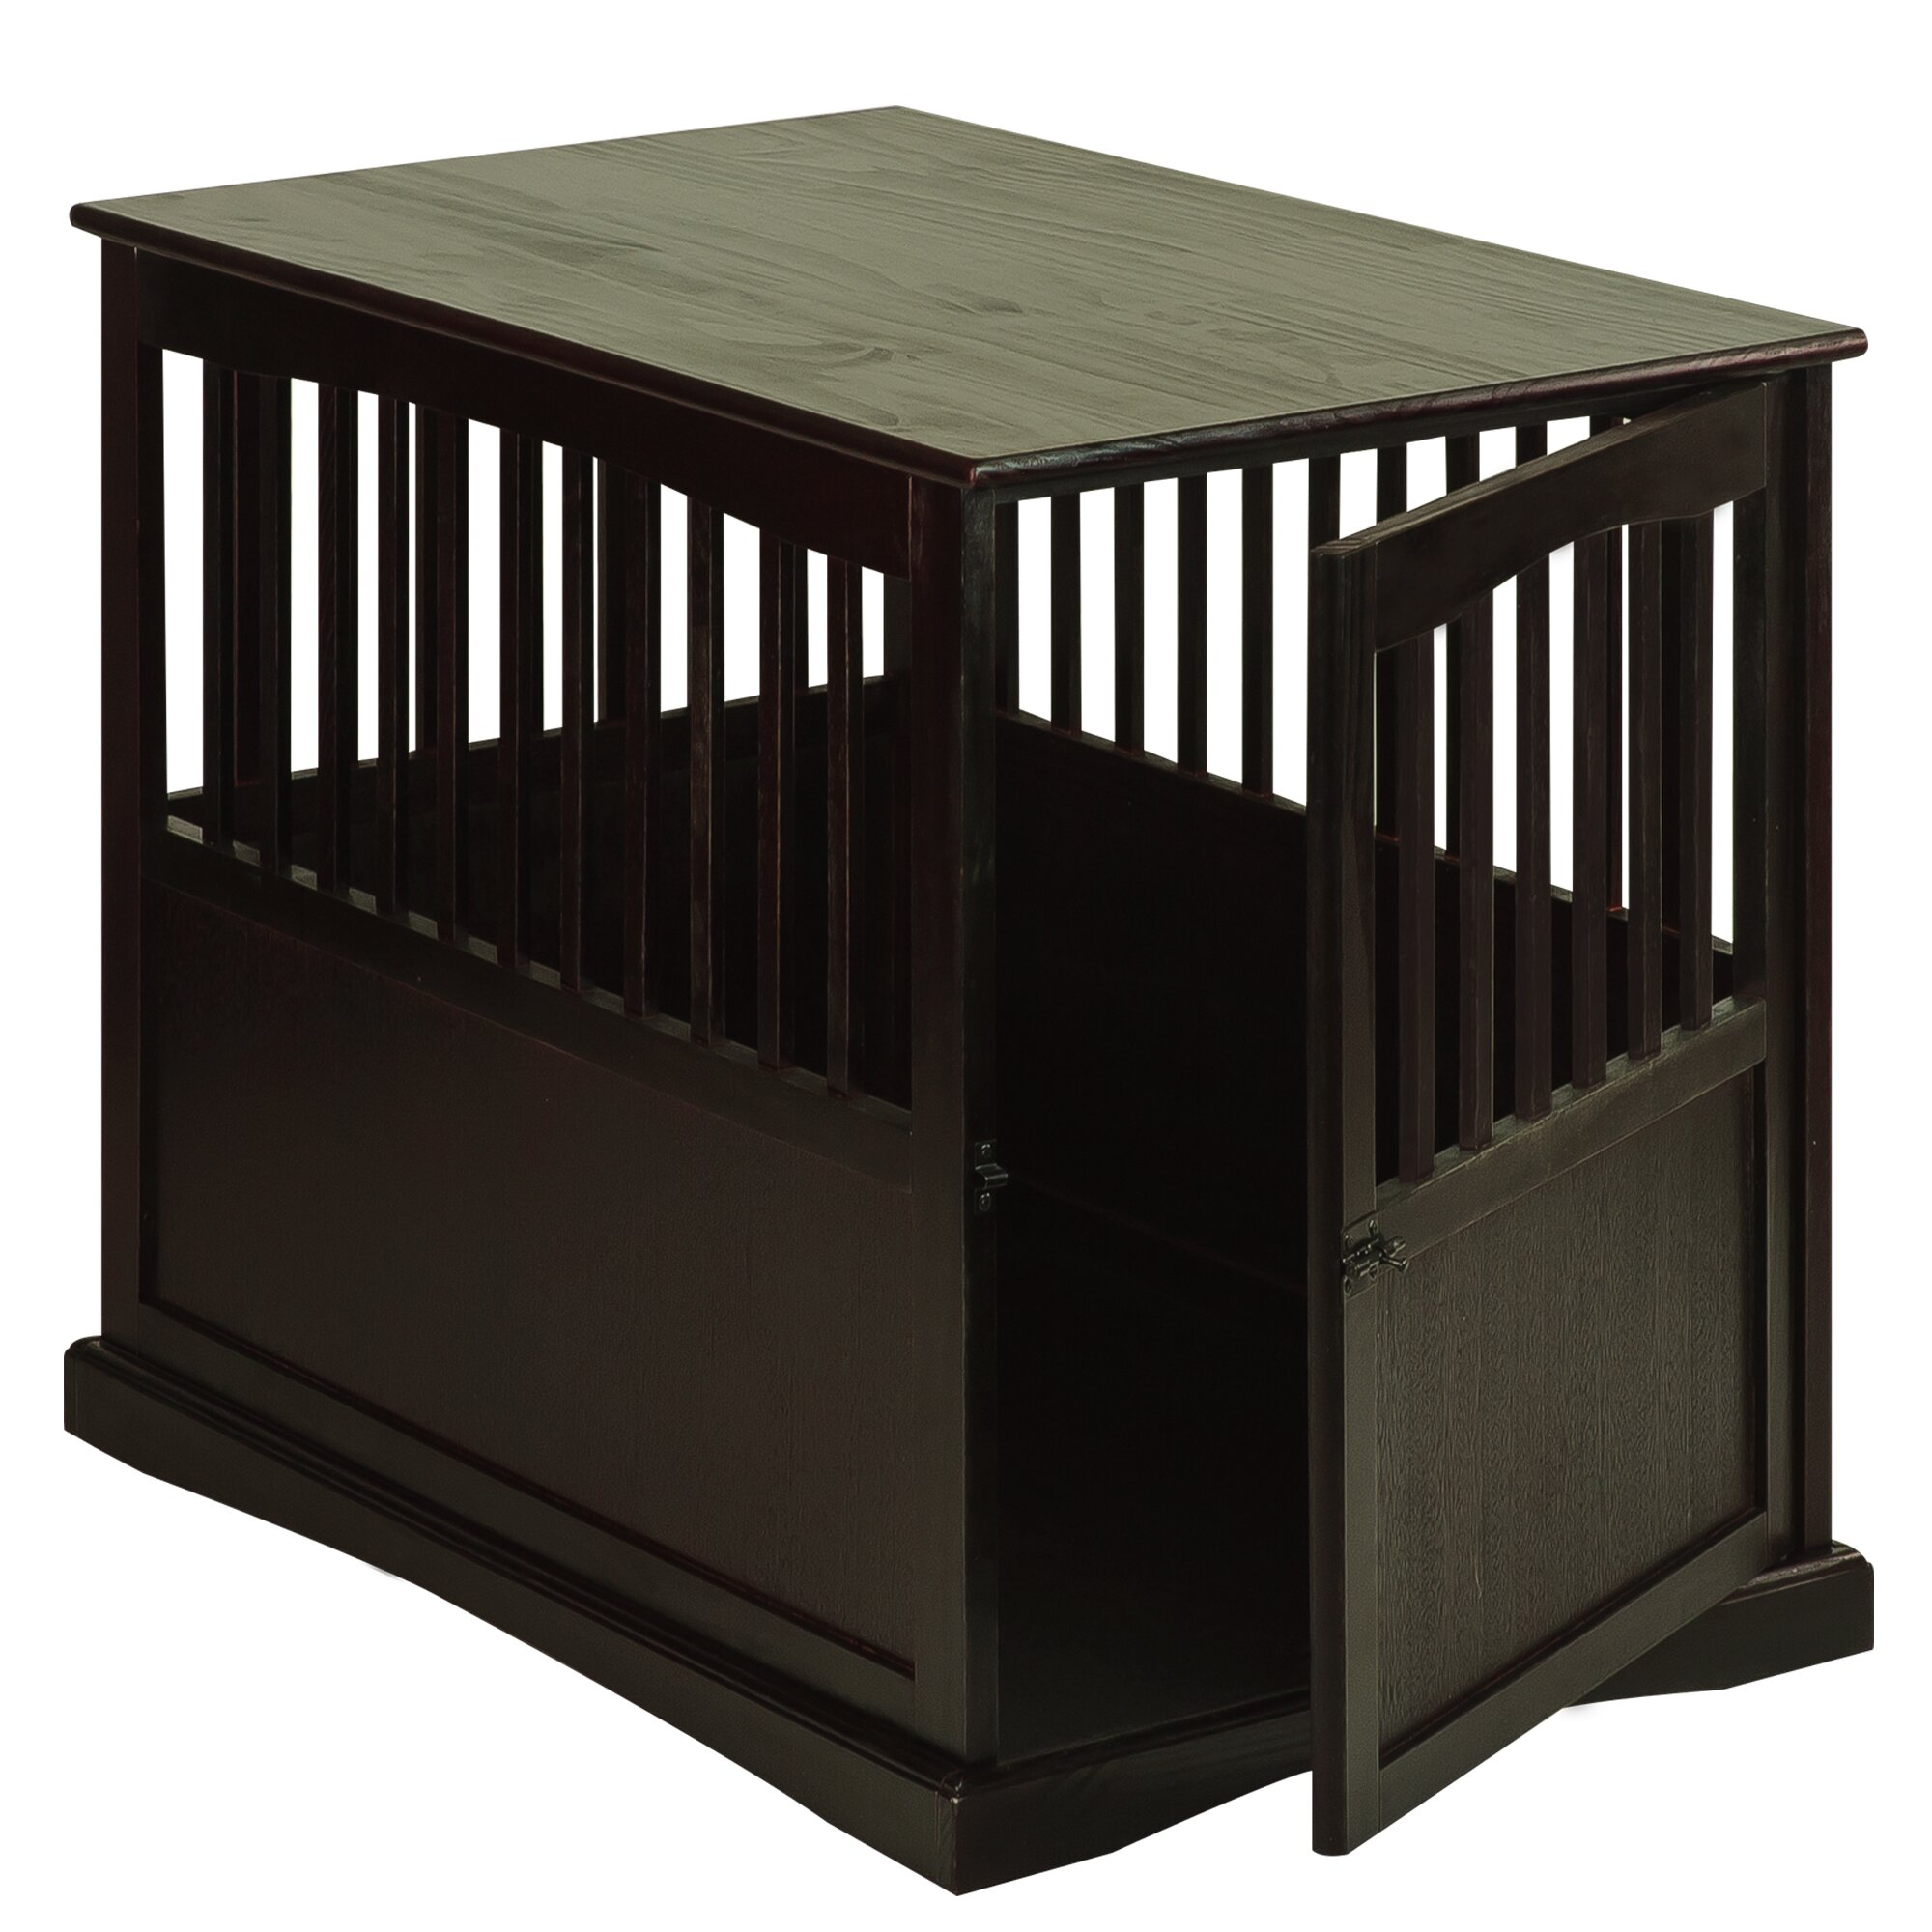 Casual Home Pet Crate End Table amp Reviews Wayfairca : Casual Home Pet Crate End Table from www.wayfair.ca size 2000 x 2000 jpeg 464kB